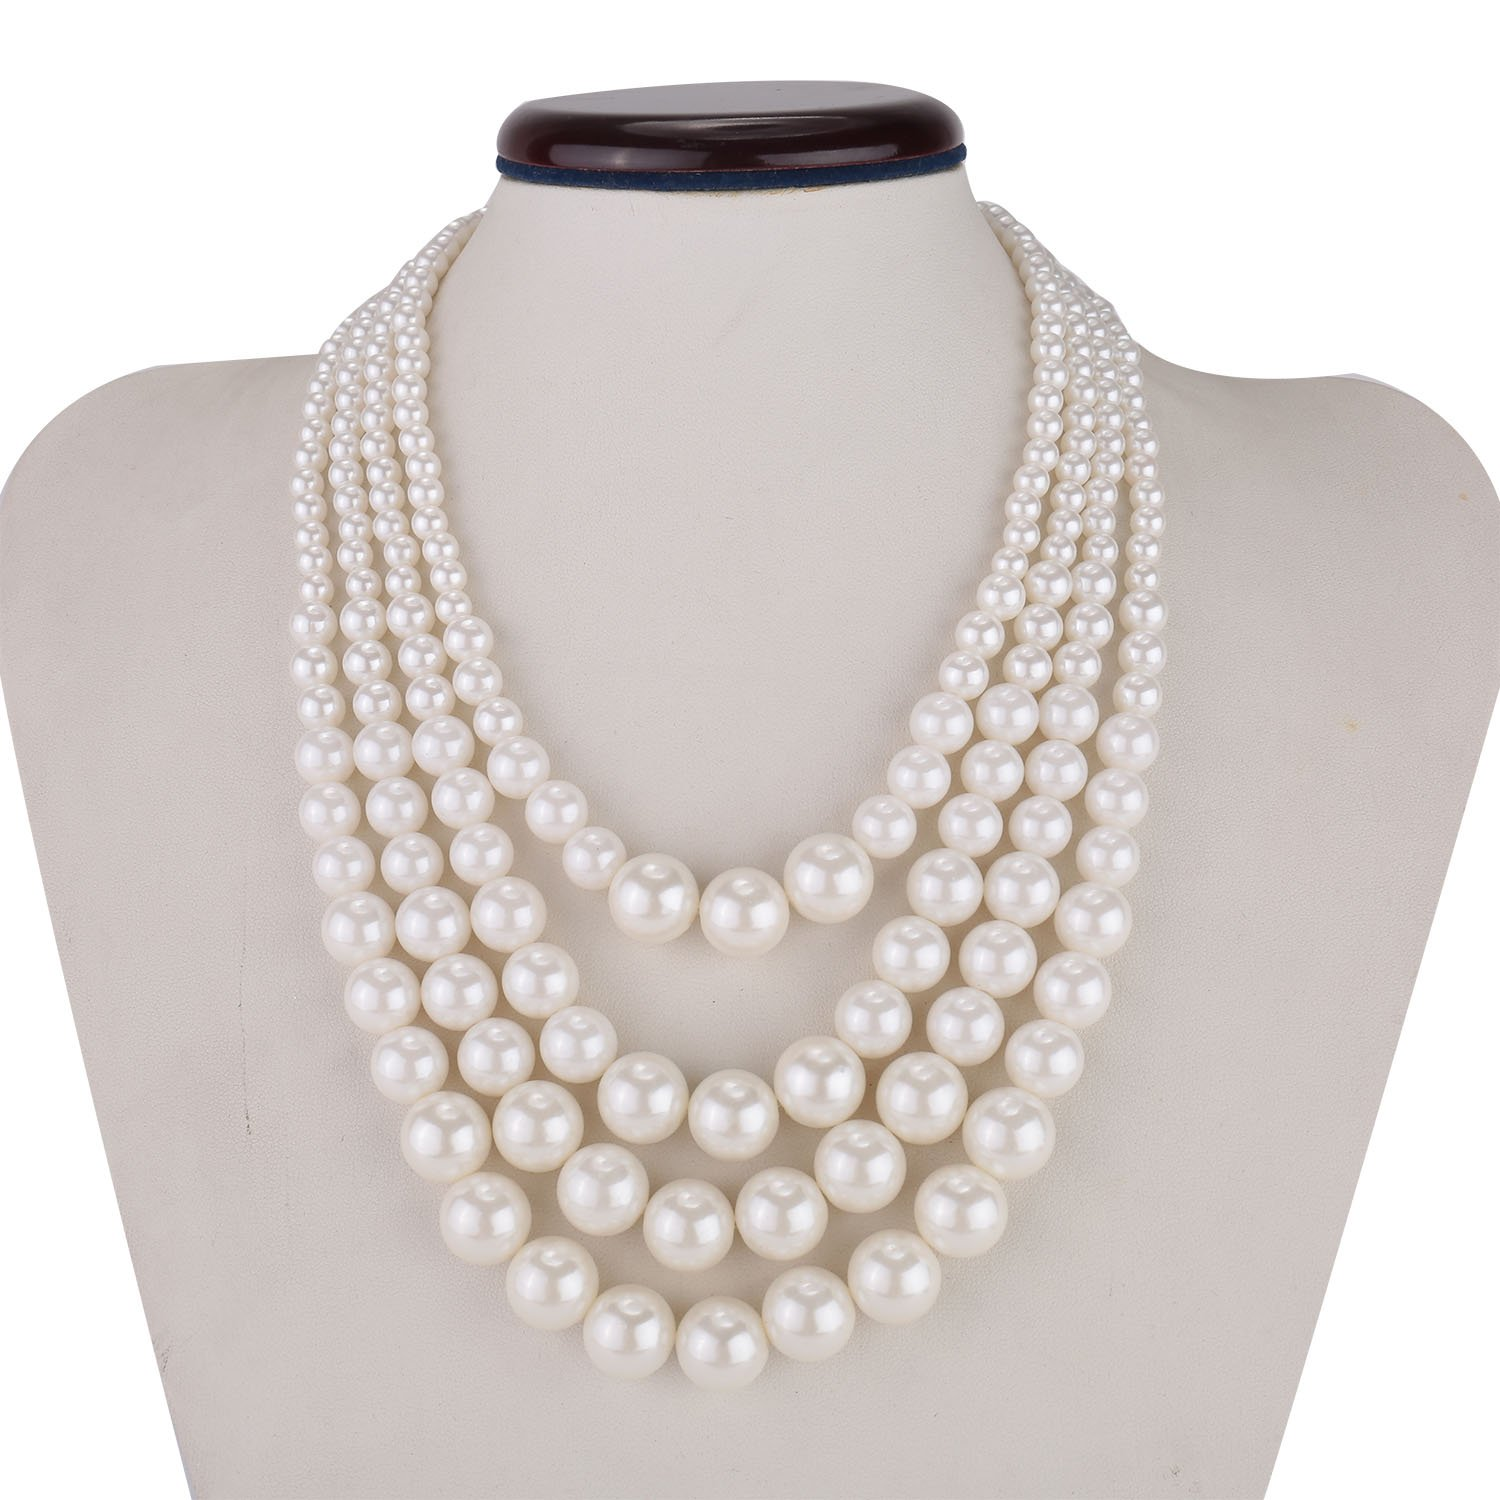 Kalse Multiple 3 4 5 Layer Simulated Pearl Strand Bib Pendant Long Necklace 17.3-25